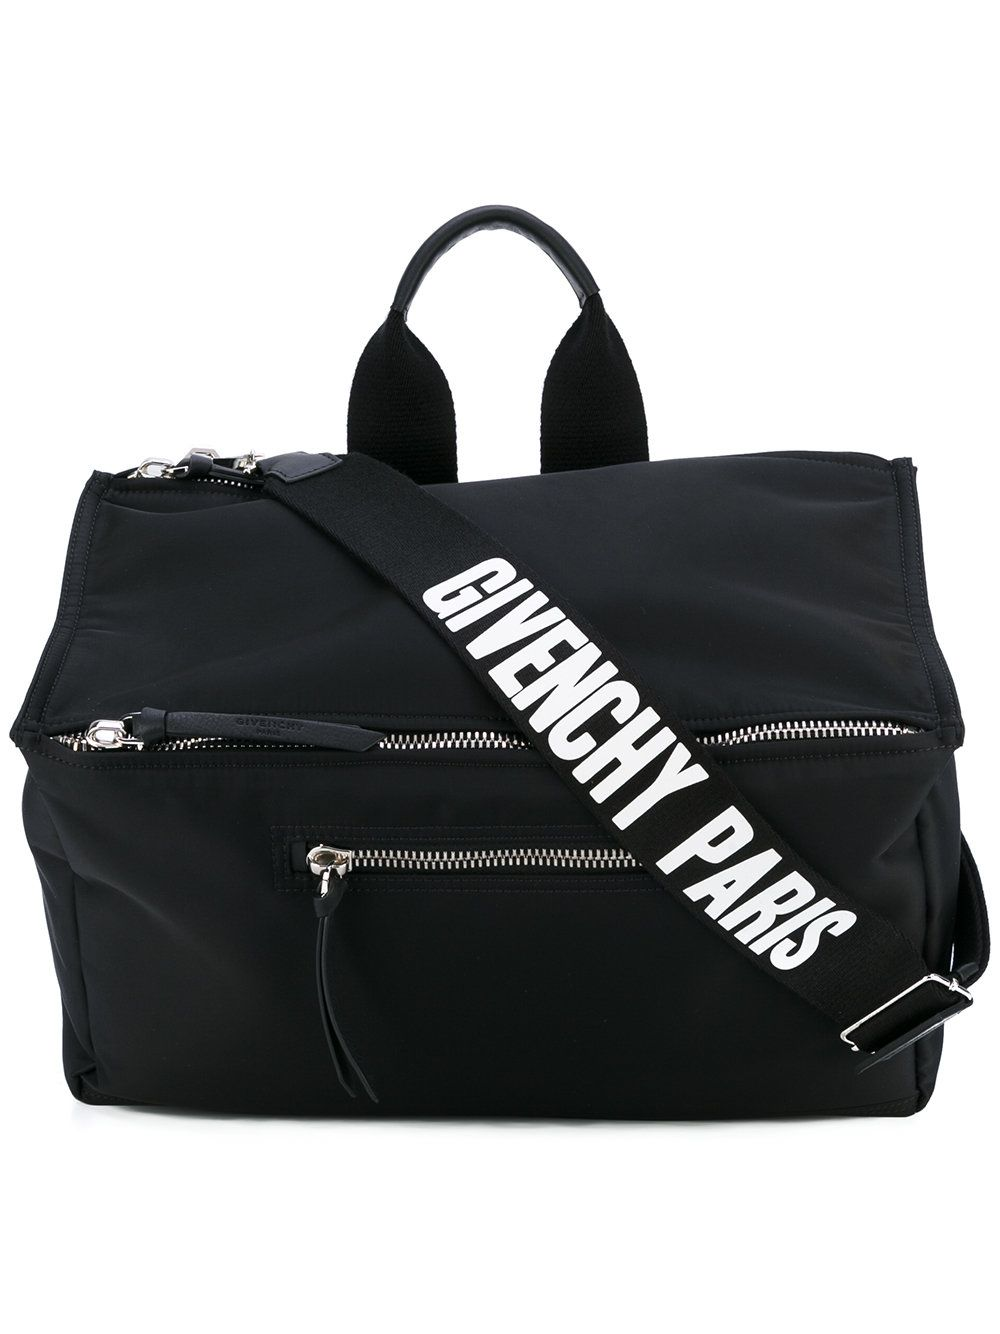 Givenchy Pandora Shell Bag in 2019  40835cd96ced7